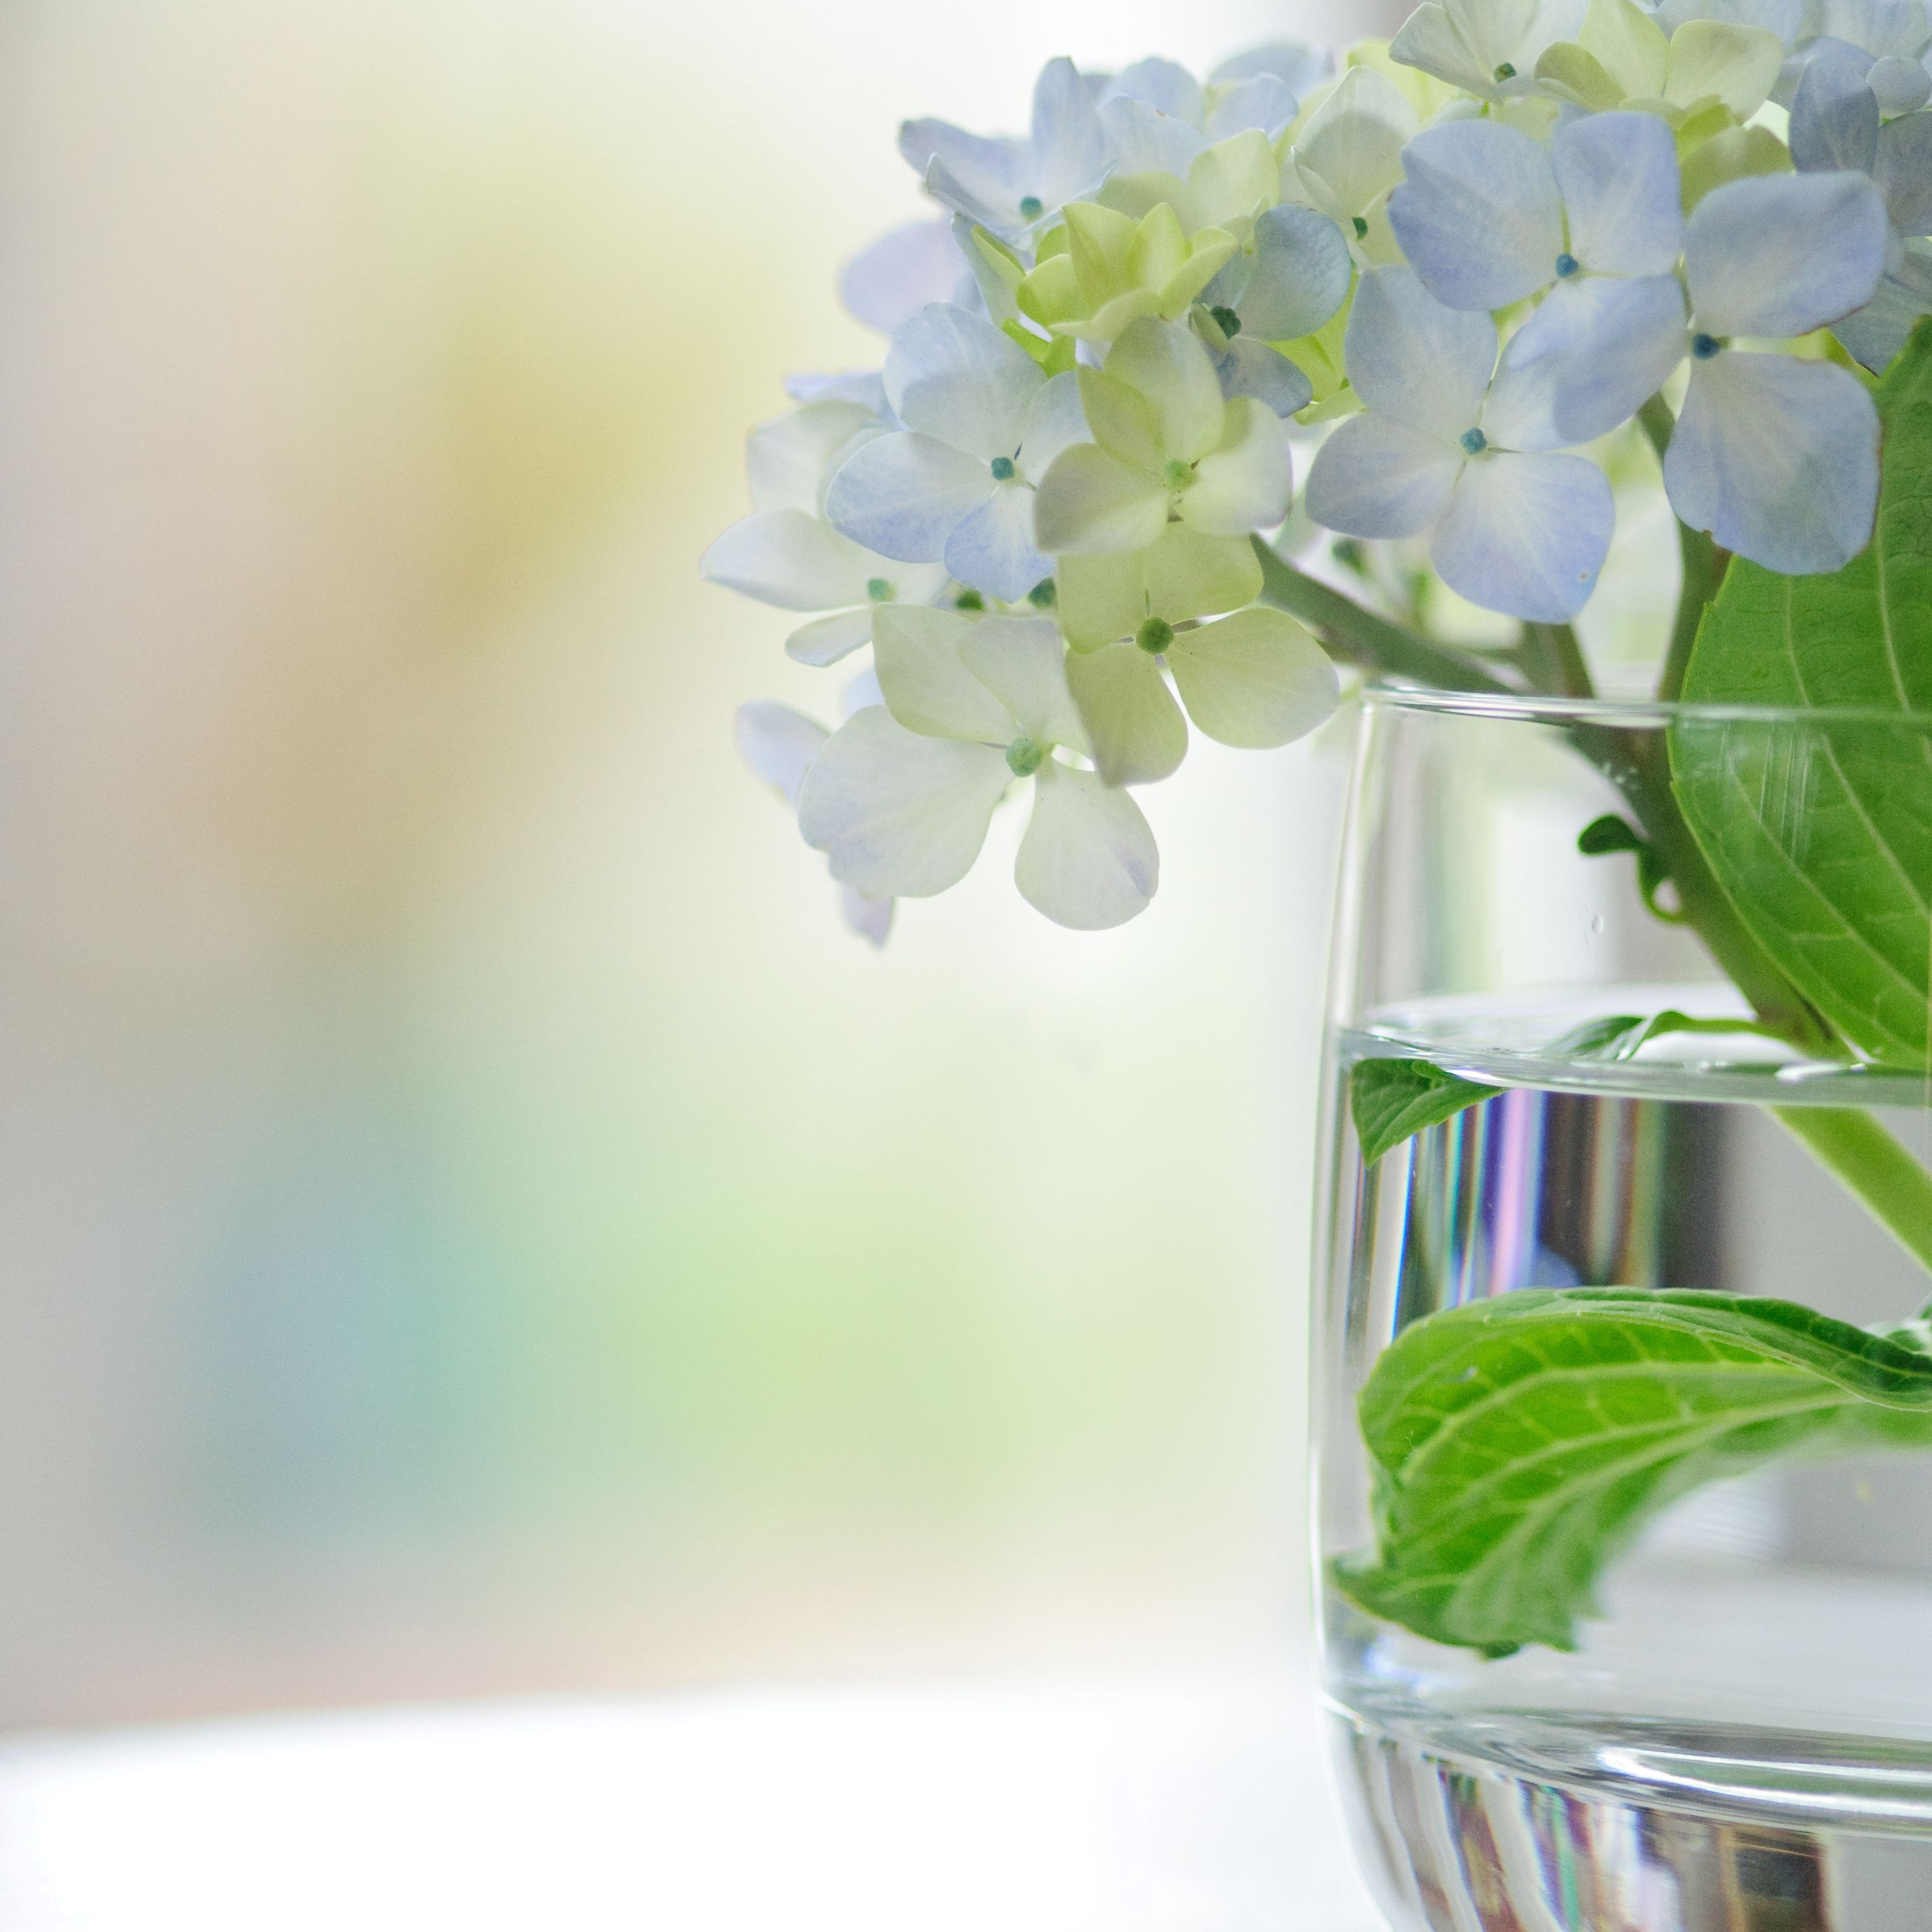 how to make floating flowers in vase of how to dry and preserve hydrangea flowers regarding hydrangeas vase gettyimages 103956334 589b63945f9b58819c837e07